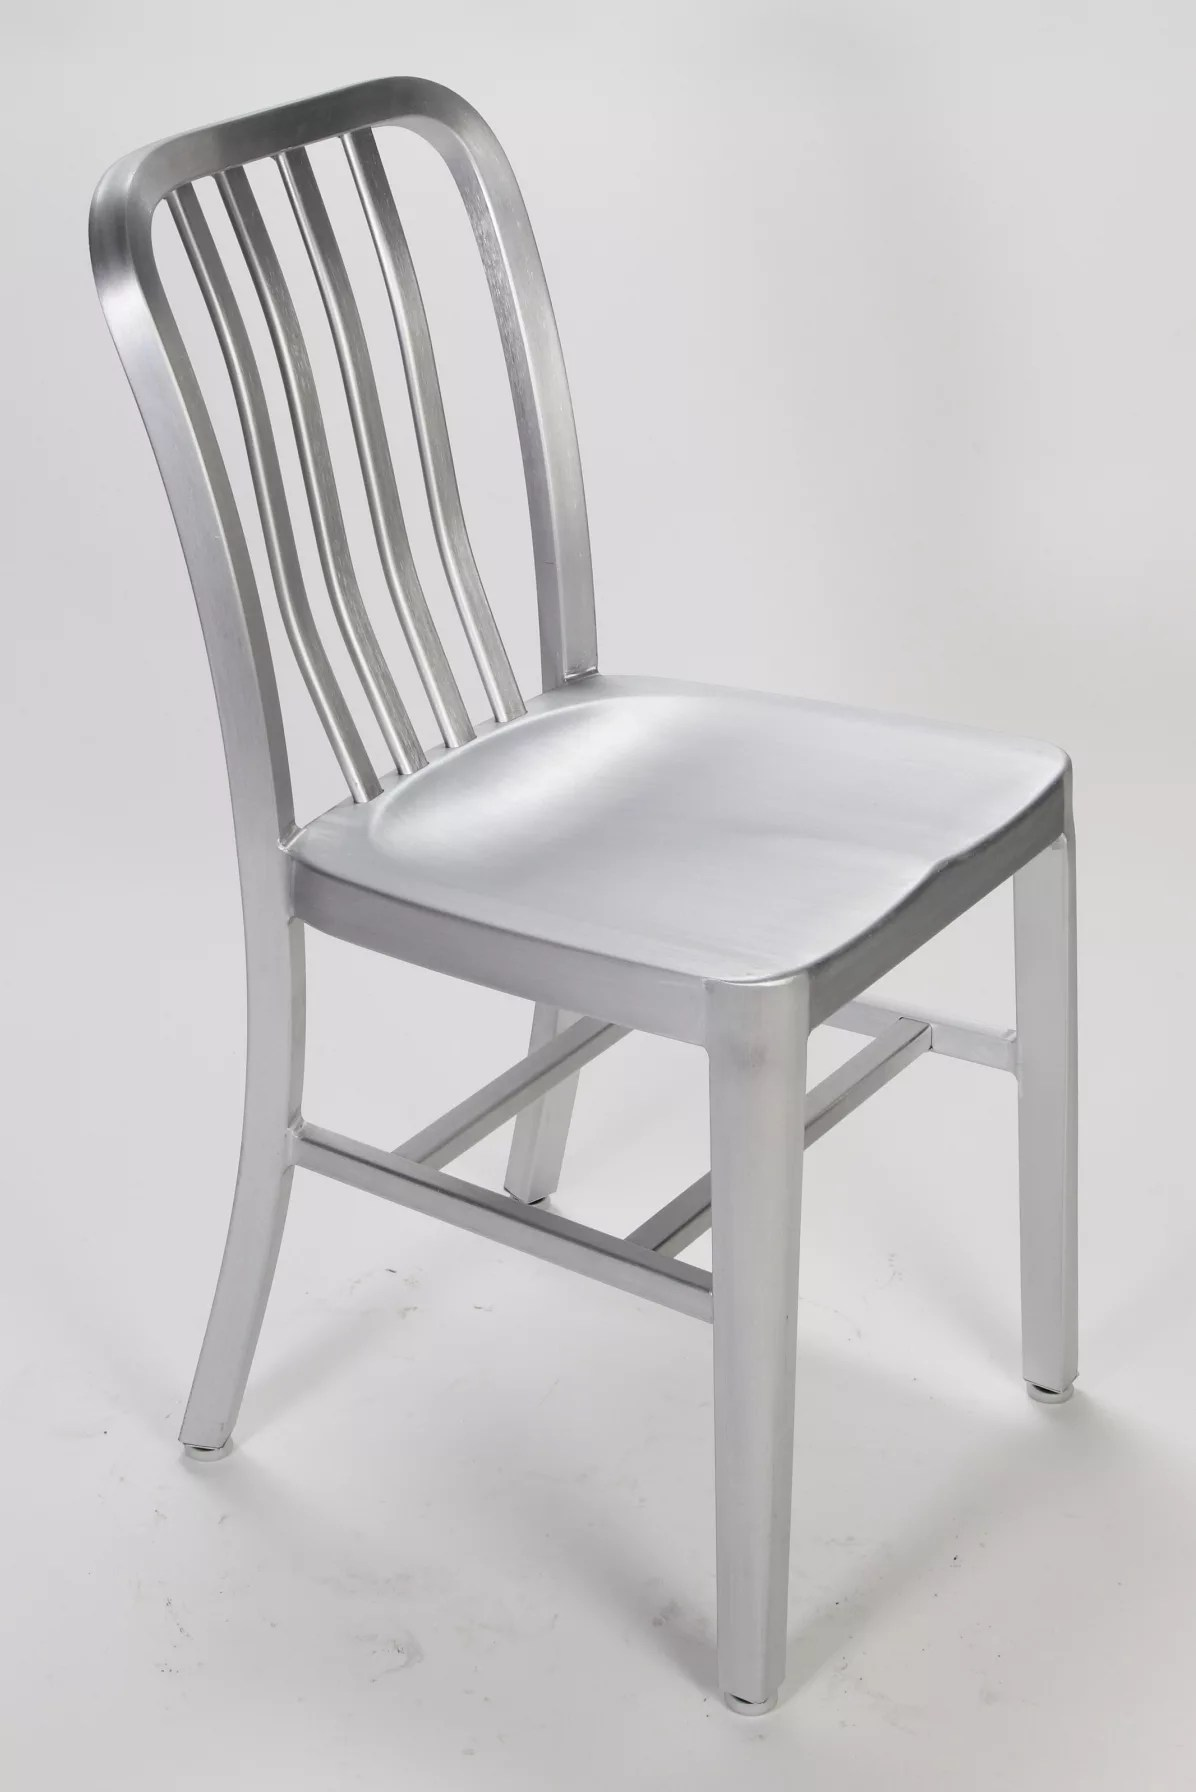 Restaurant Tables And Chairs Aluminum Restaurant Chairs 12 Reasons To Choose